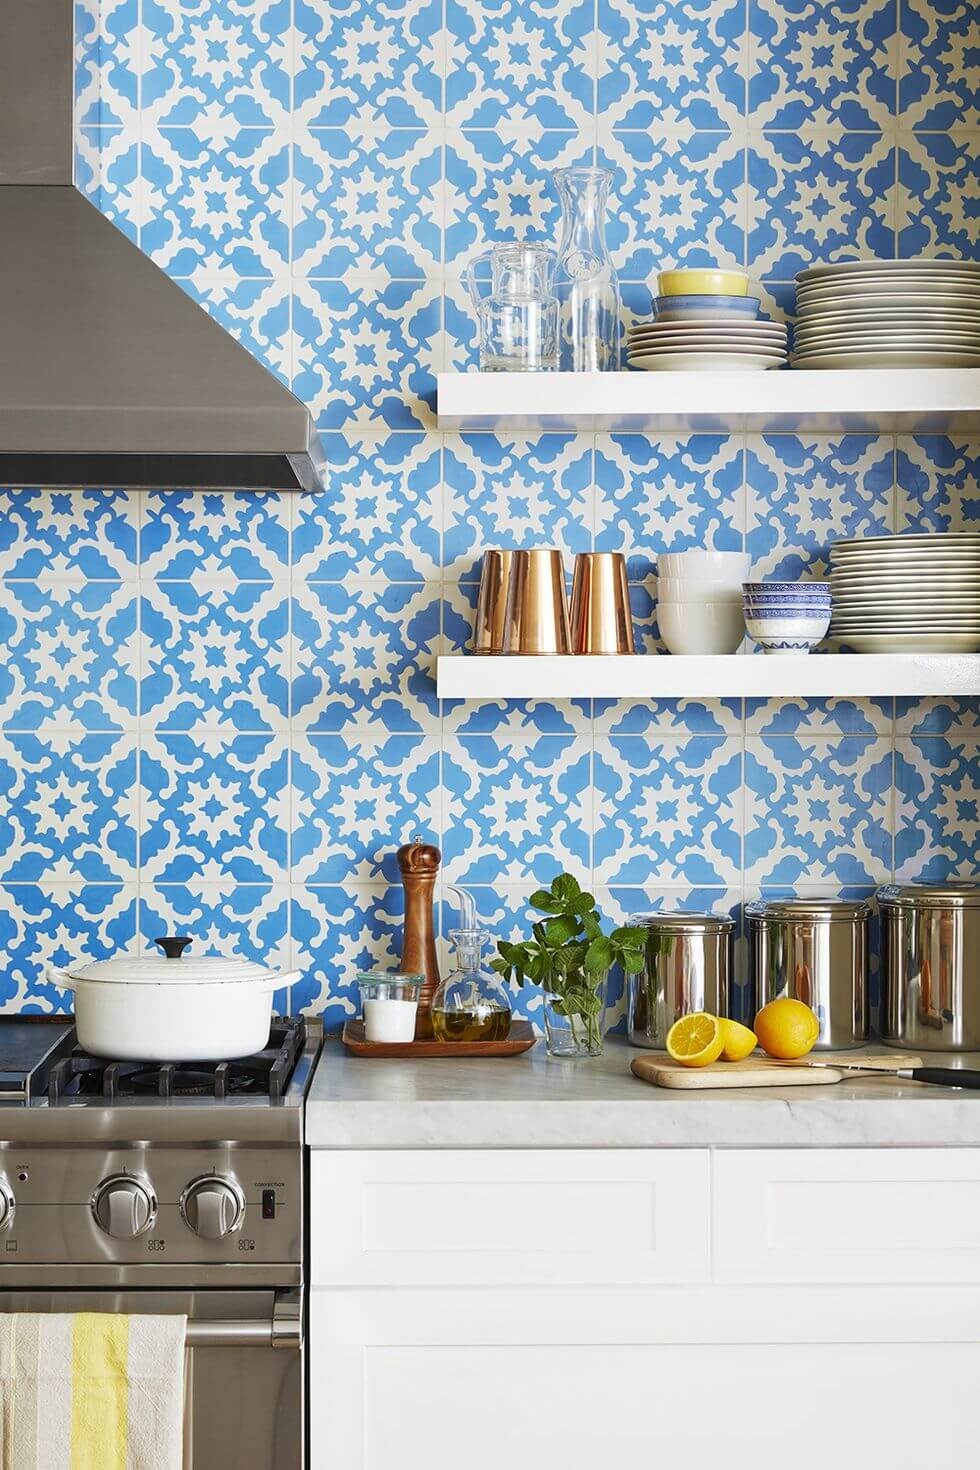 PATTERNED TILES FOR APARTMENT KITCHEN WALL DECOR IDEAS ...